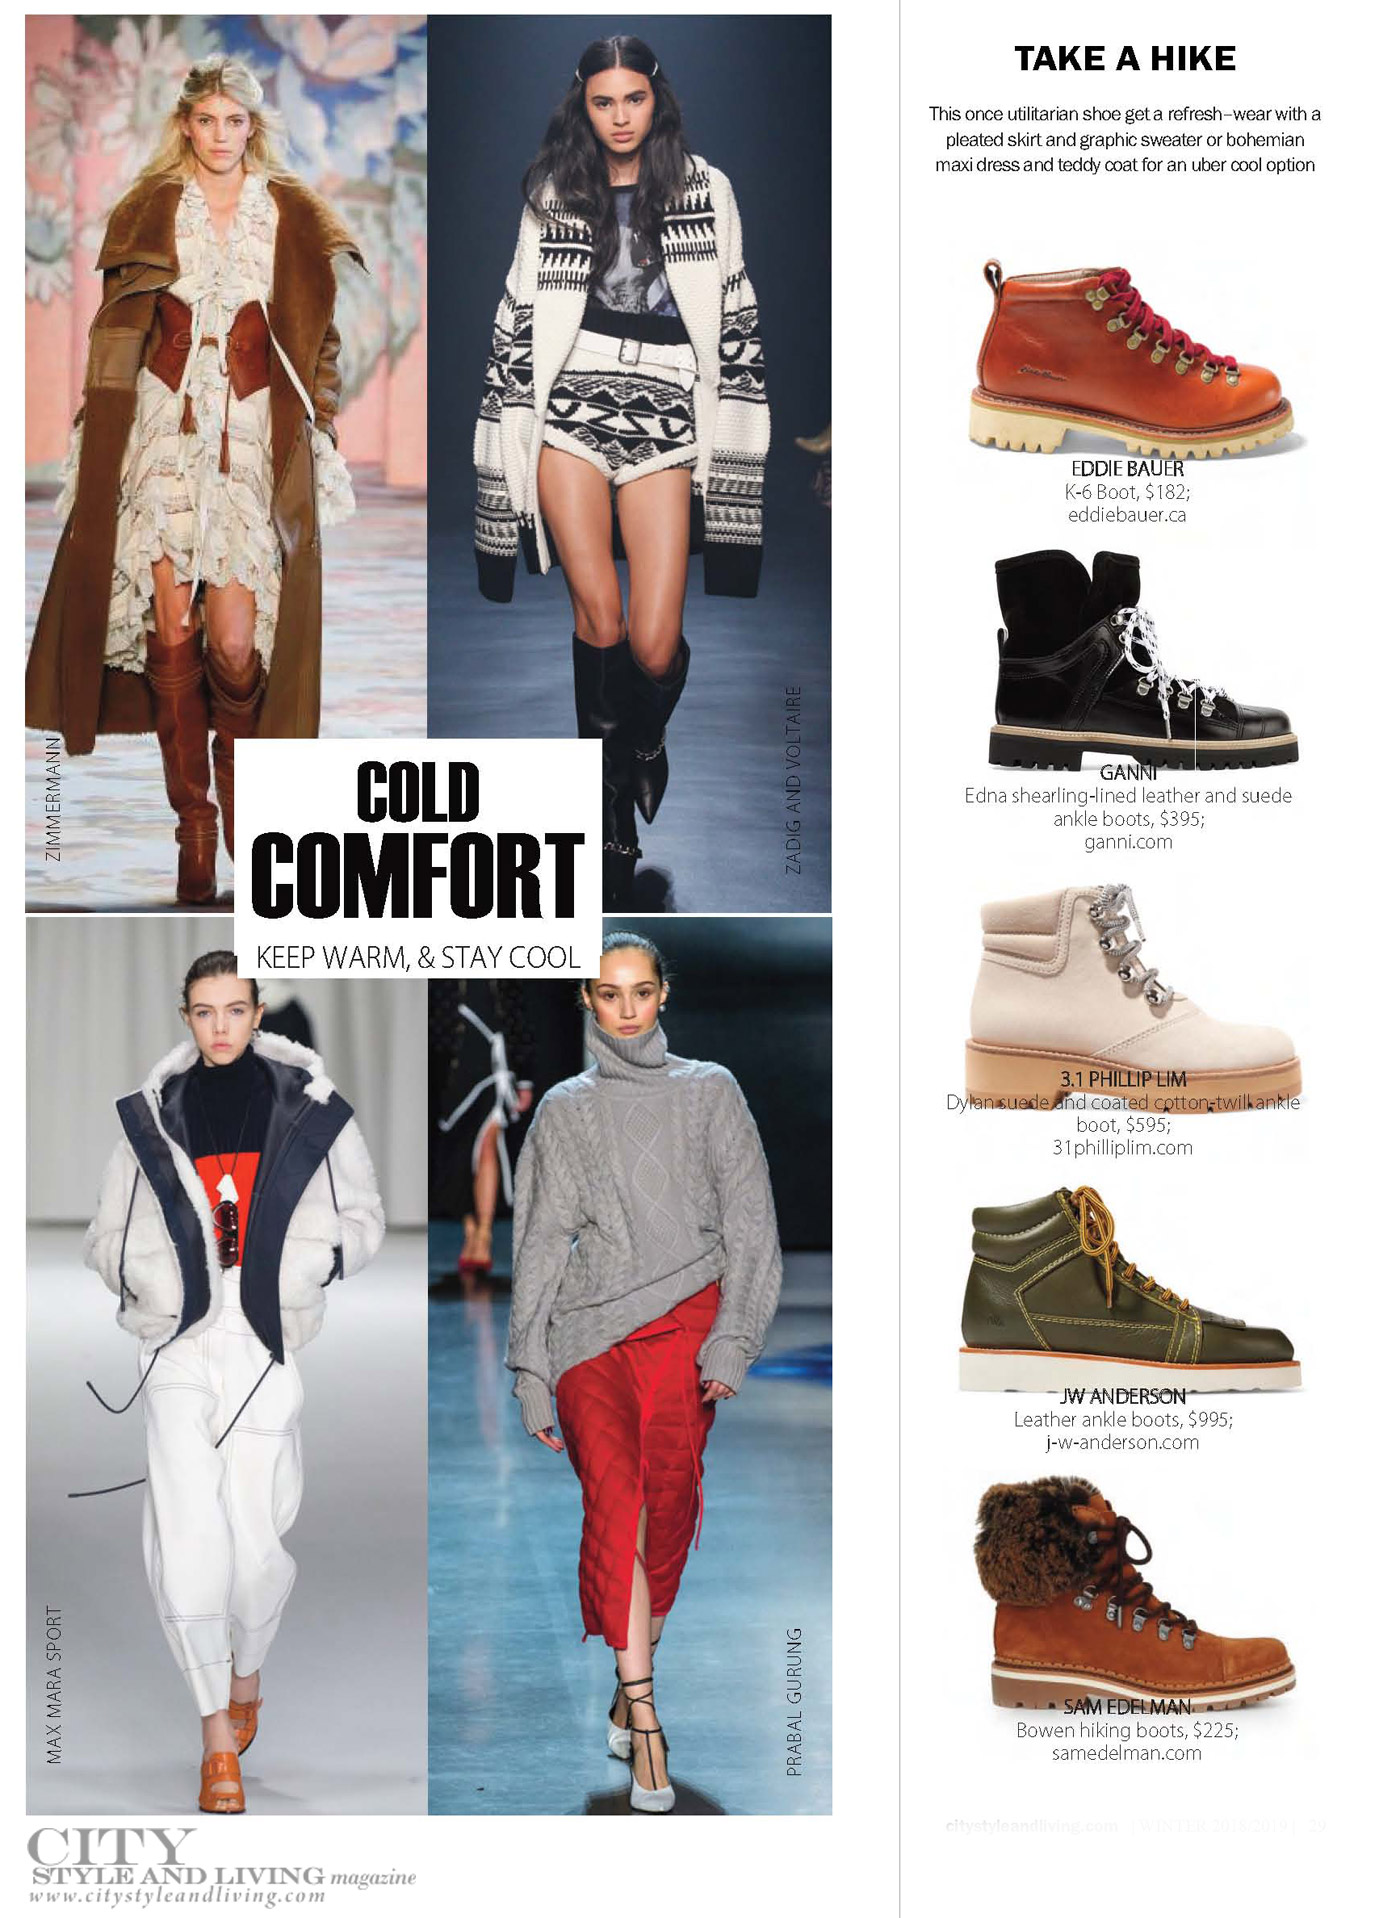 City Style and Living Magazine Winter 2018  cold comfort fashion